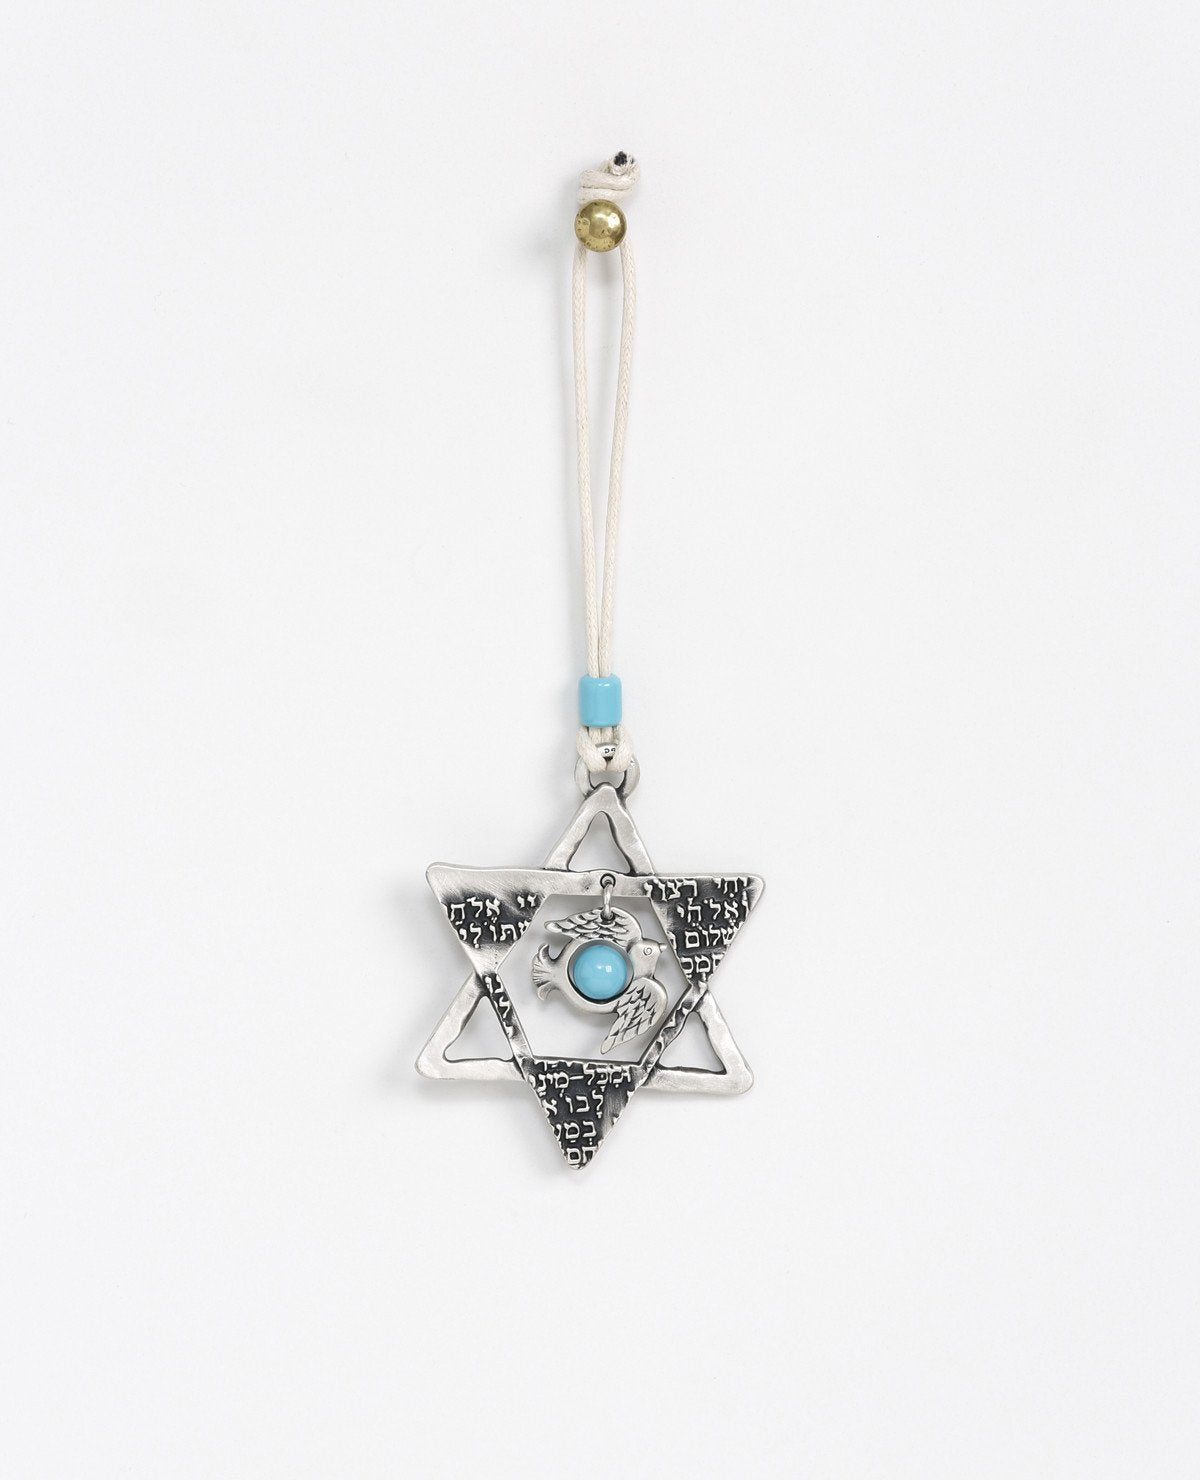 Sterling silver plated car pendant with a turquoise bead.  Length: 8 cm  Width: 7 cm